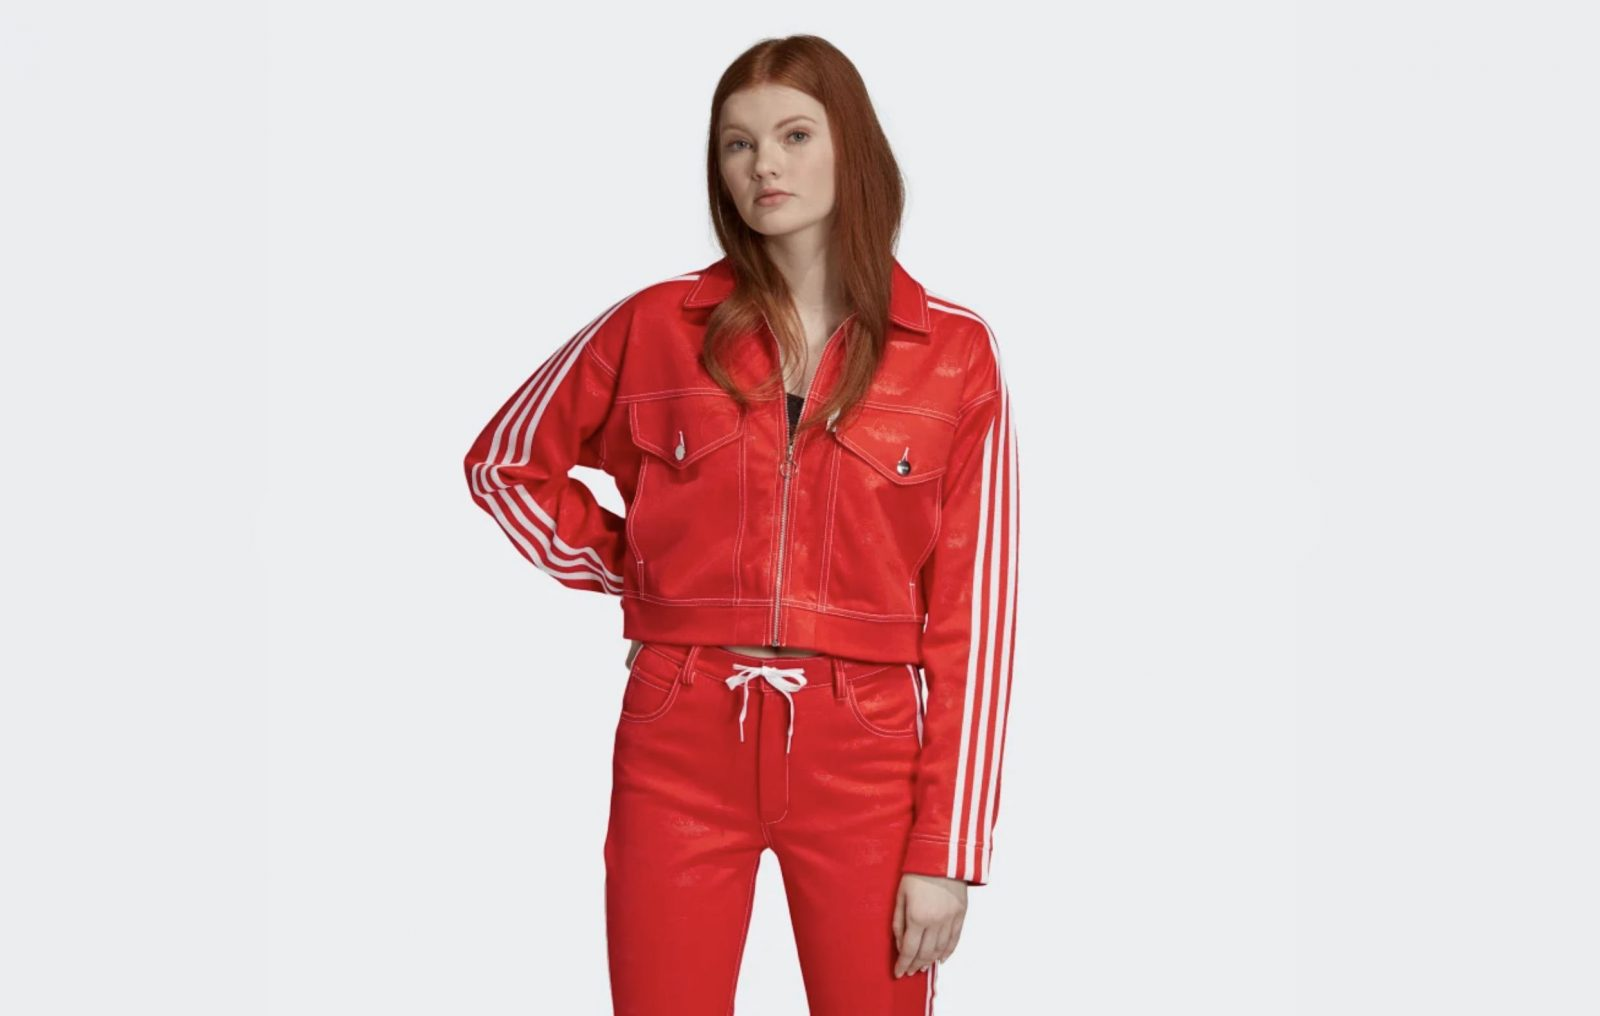 The Newest adidas Originals x Fiorucci Clothing Collaboration Is Available NOW!